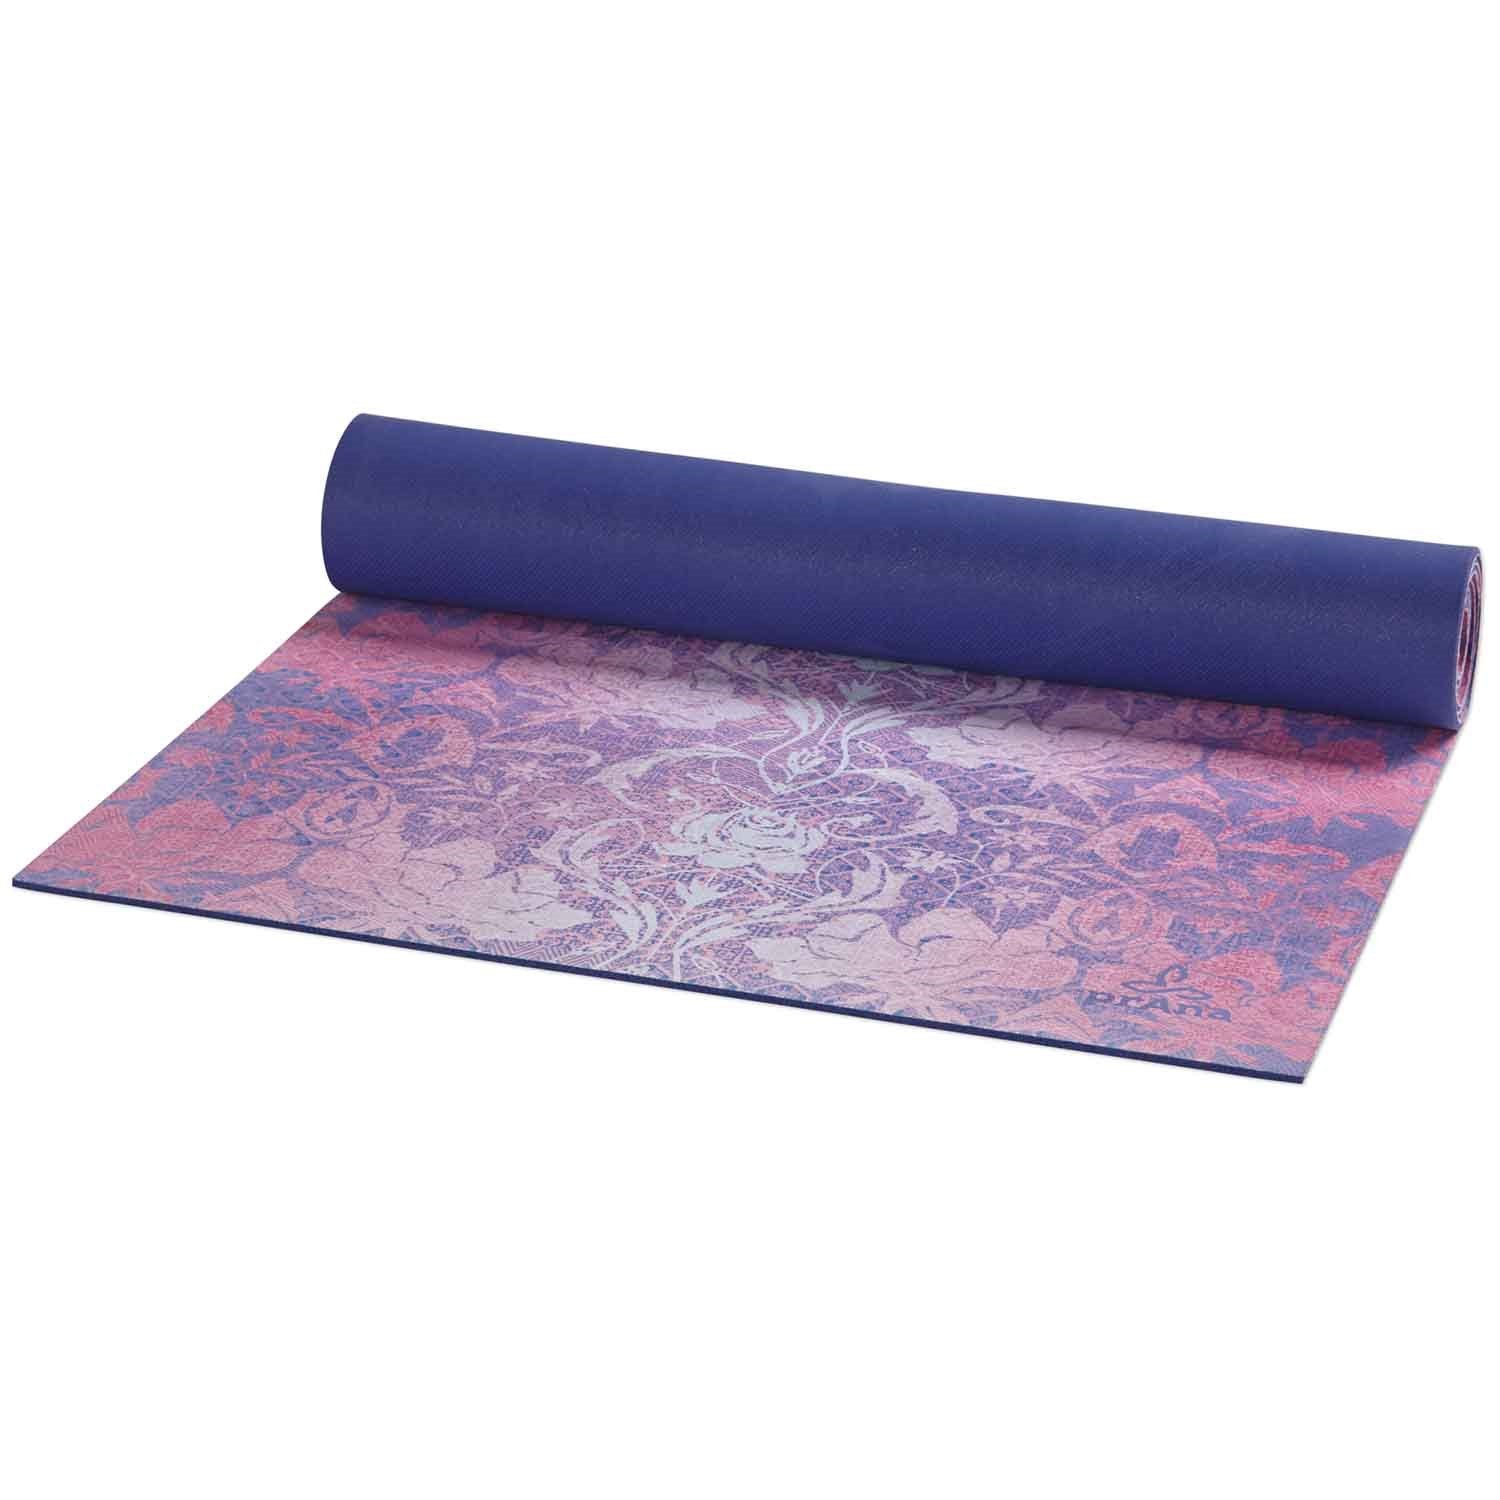 mats printed numinous mat yoga spots seeing co products